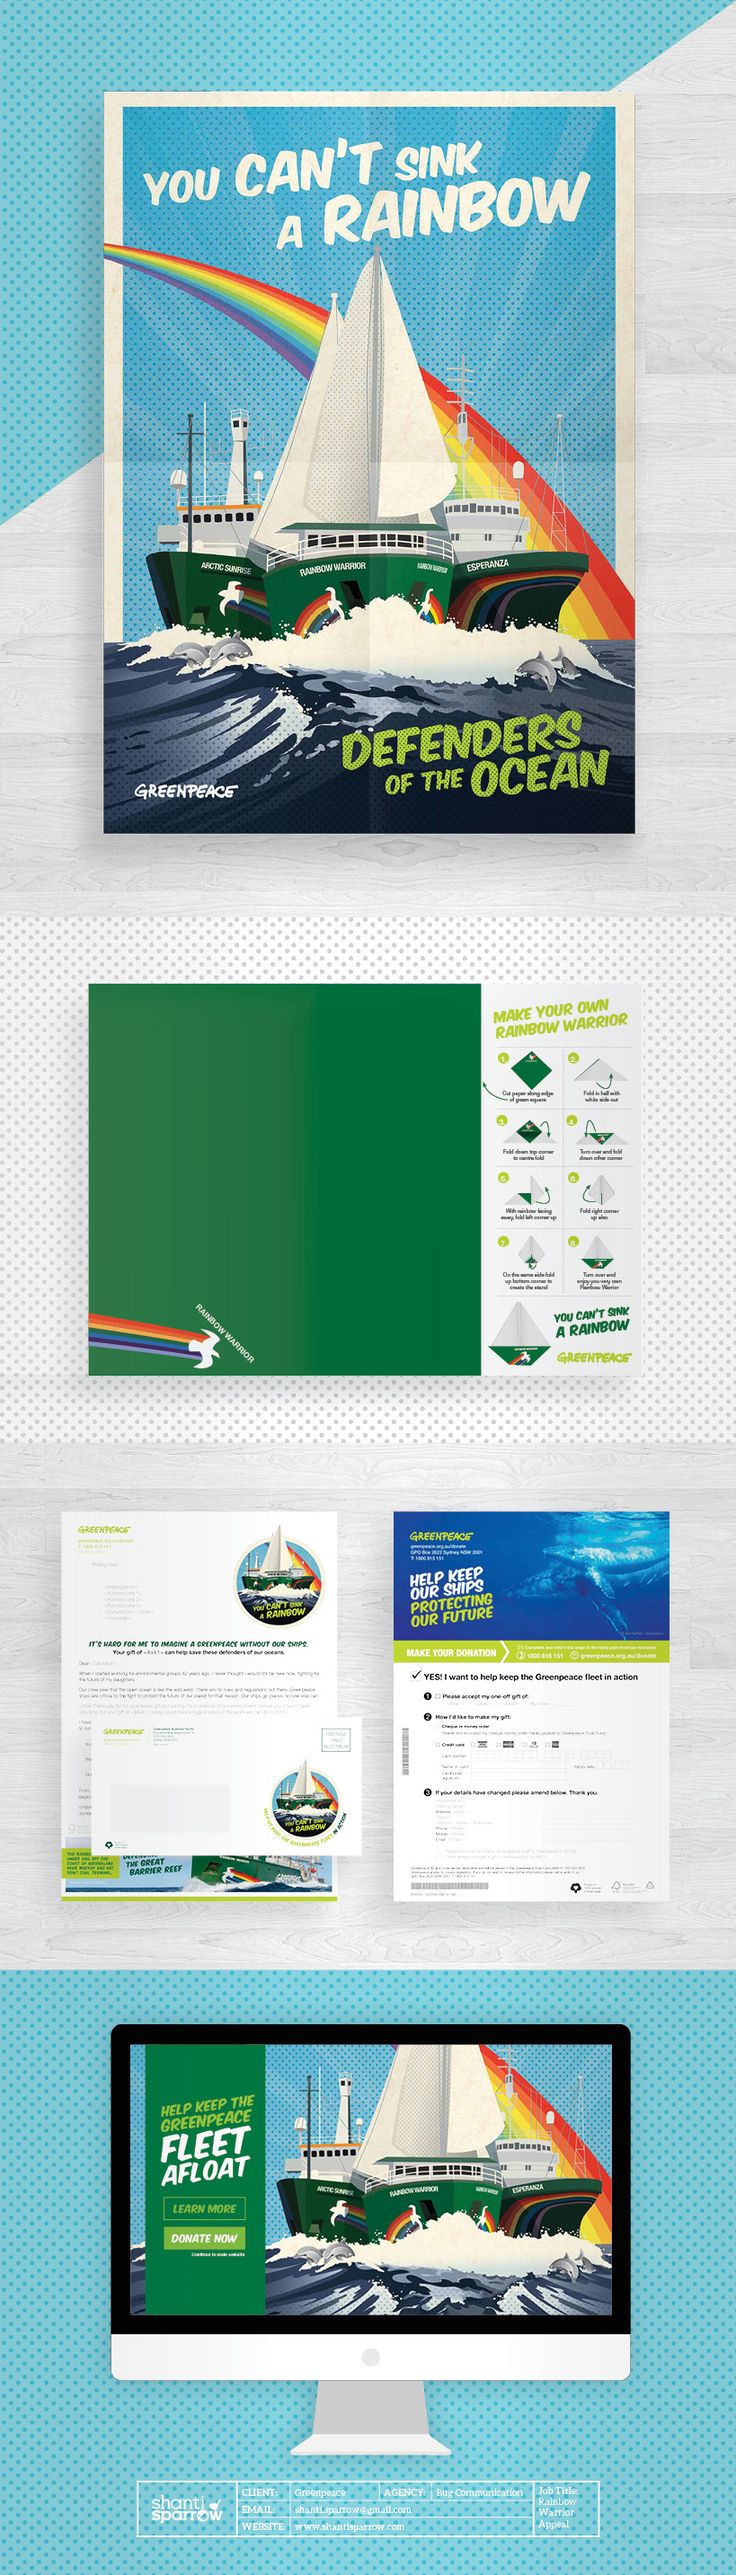 Poster design firms - Download